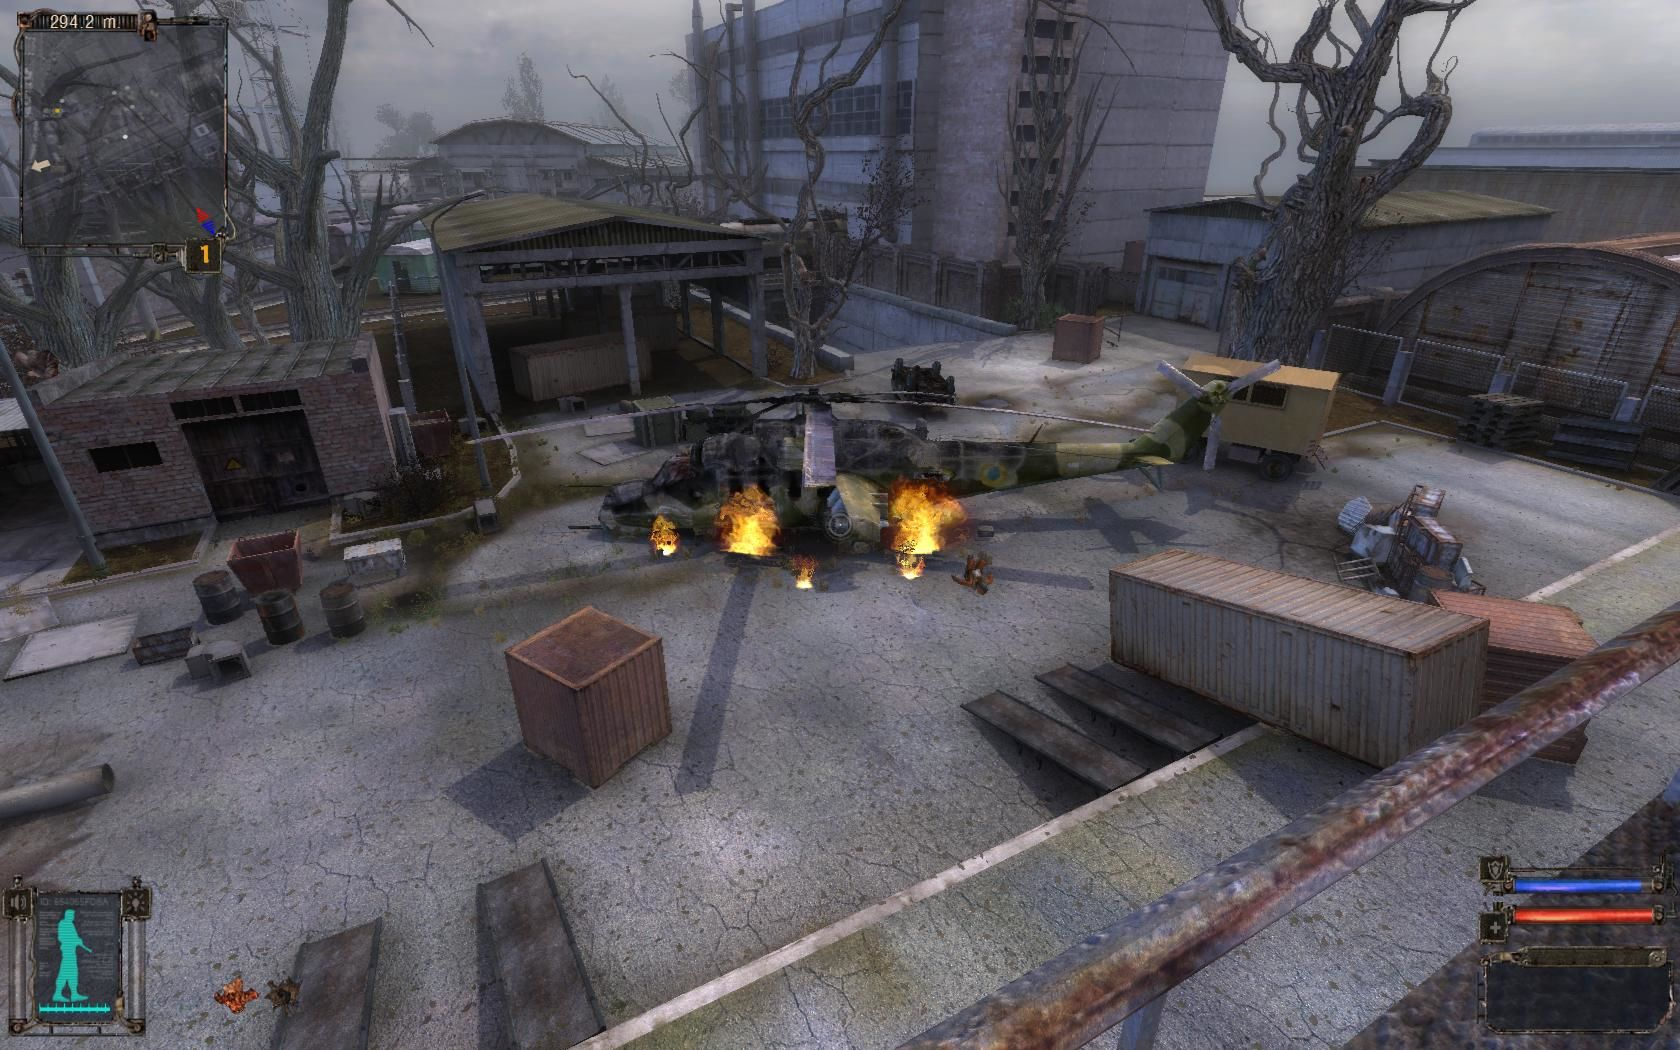 S.T.A.L.K.E.R.: Shadow of Chernobyl Windows Mercenaries shoot down an helicopter